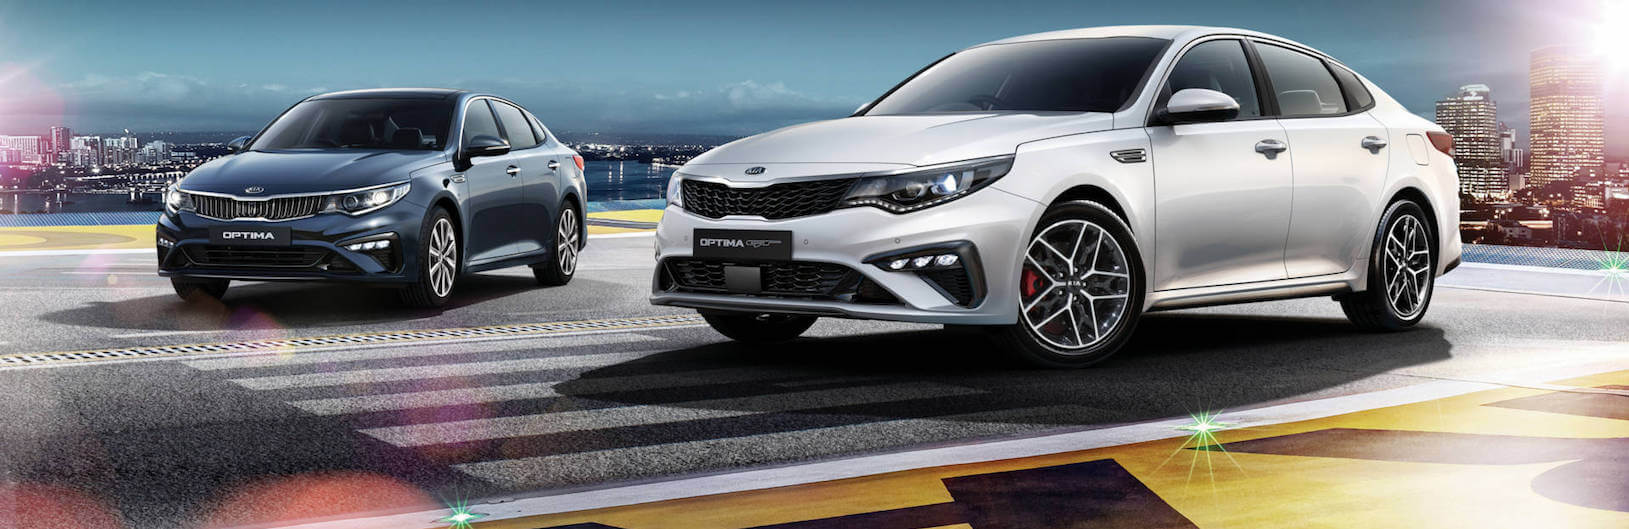 Kia Servicing Melbourne Kia Optima Sporty Midsize Sedan Mcrae Kia